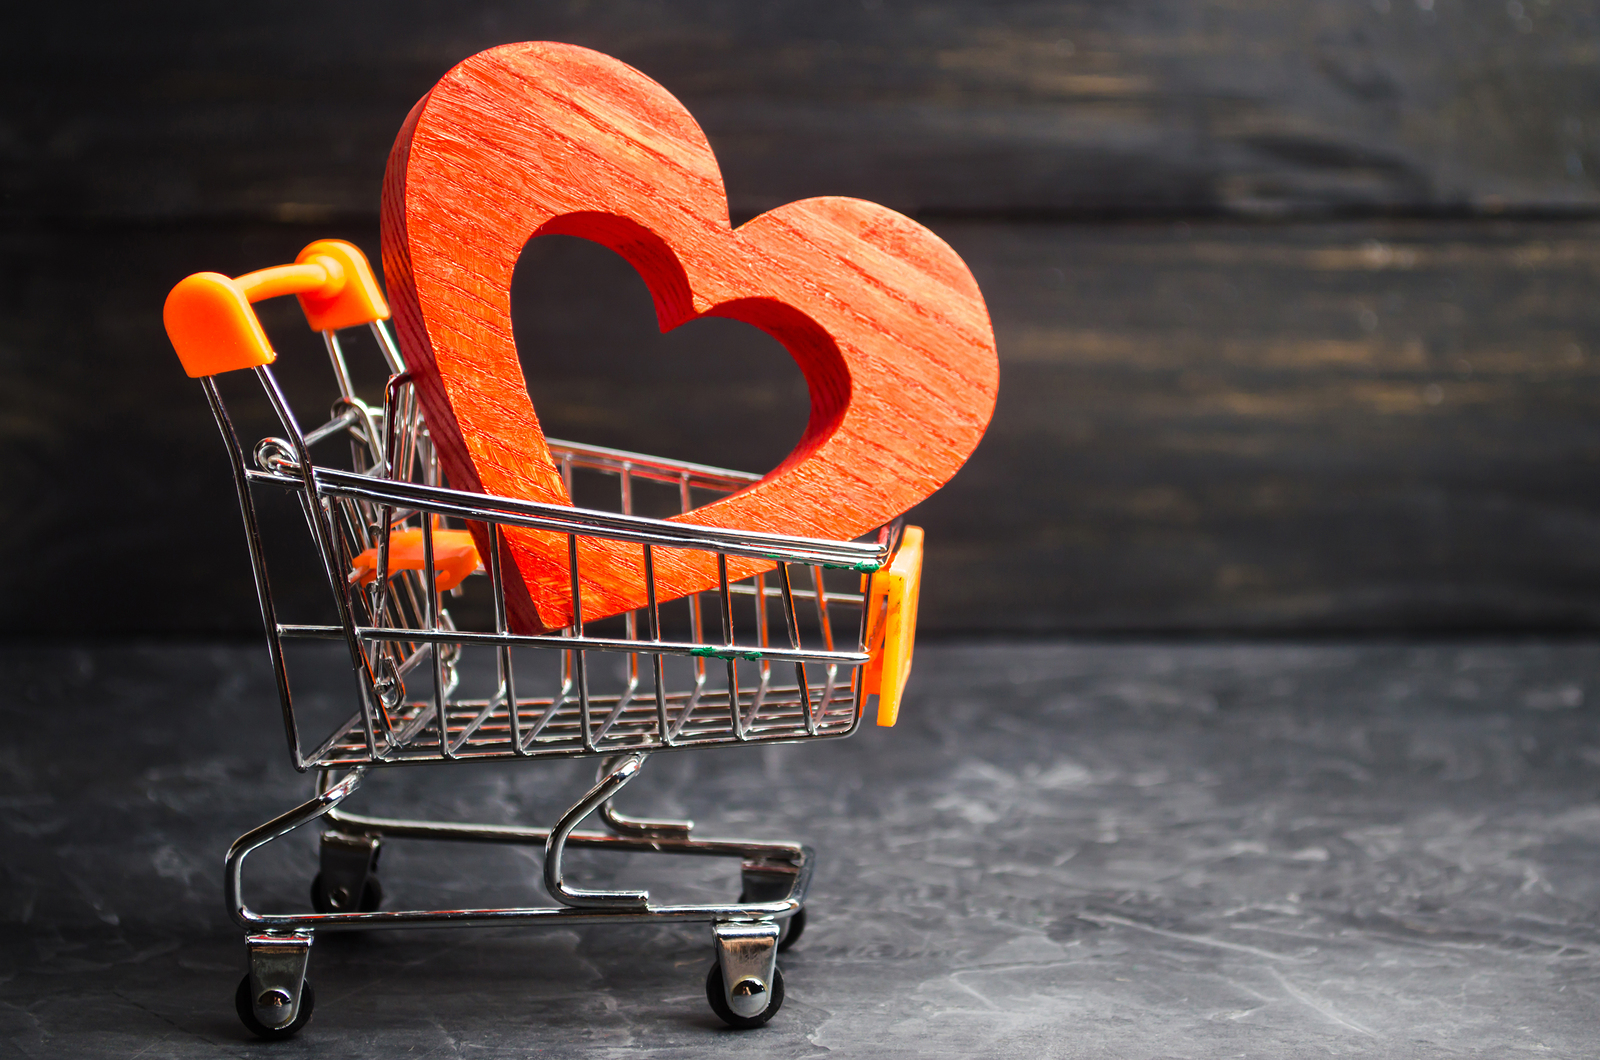 bigstock-Red-Heart-In-The-Supermarket-T-263631160